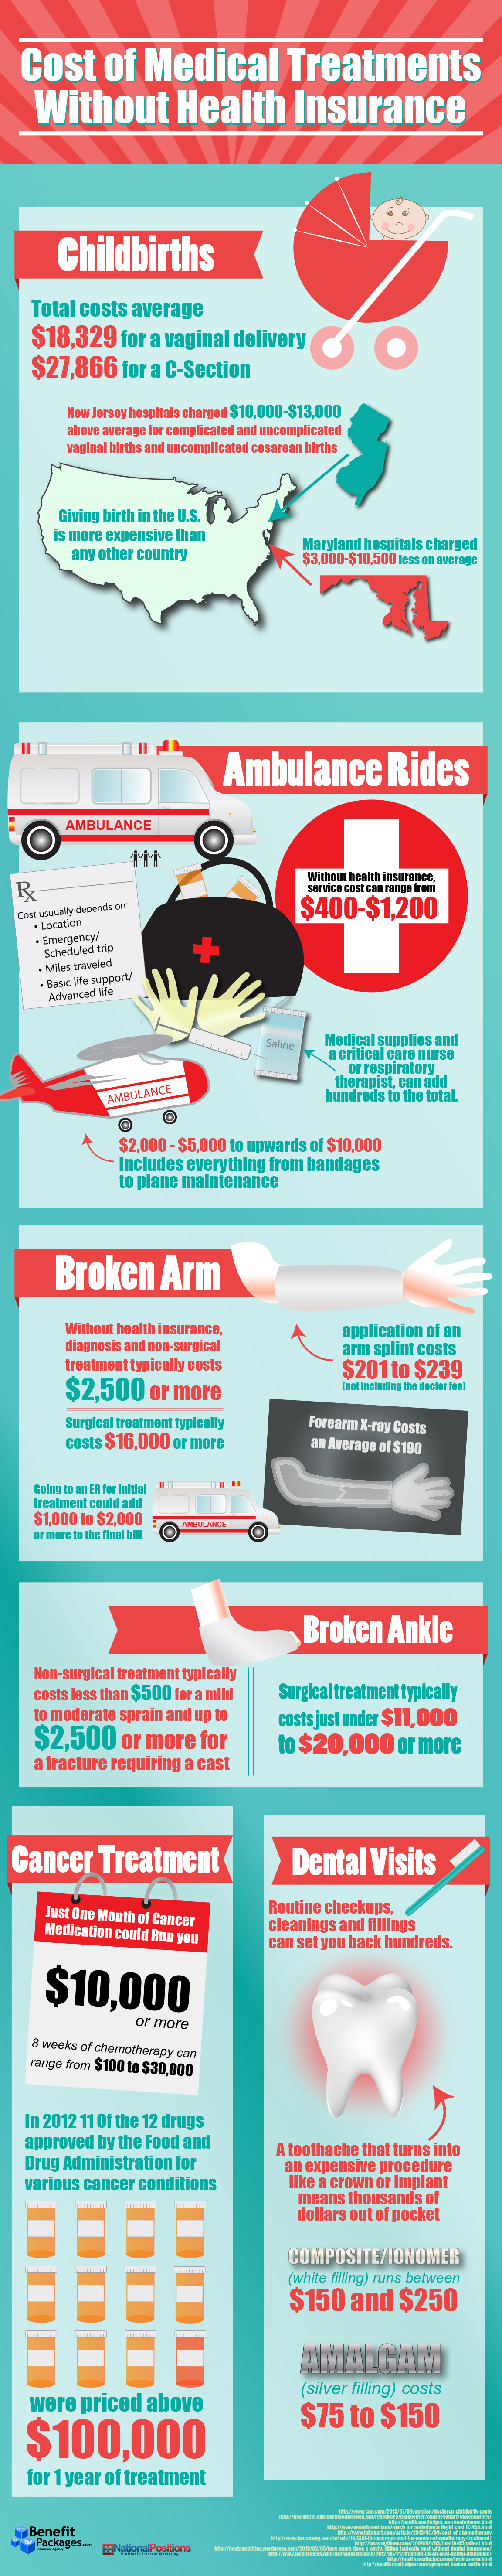 Infographic: Cost of Medical Treatments Without Health Insurance [Infographic]